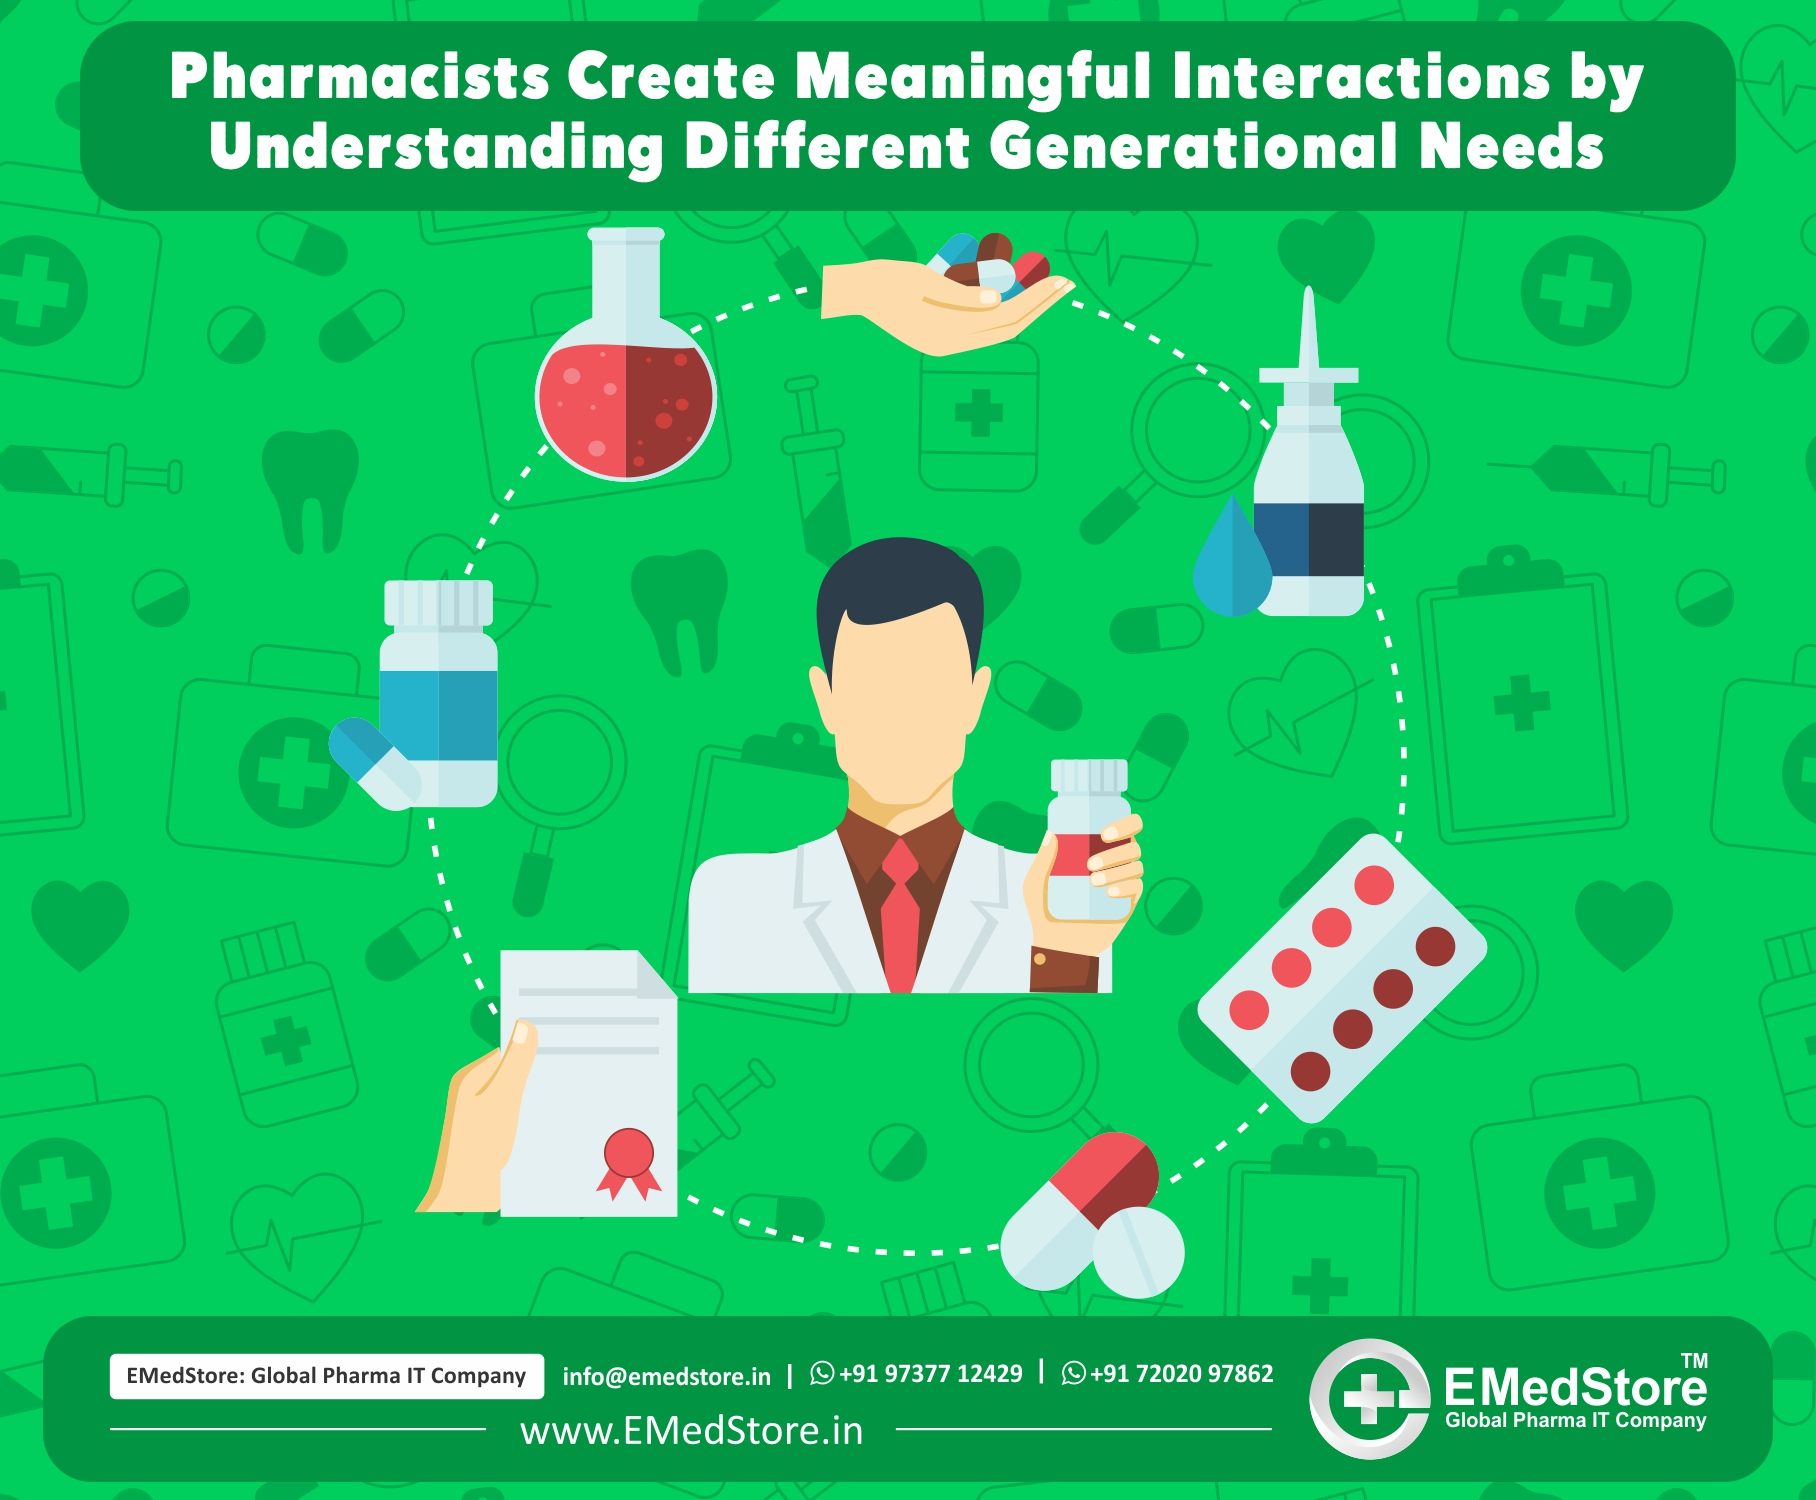 Pharmacists Create Meaningful Interactions by Understanding Different Generational Needs